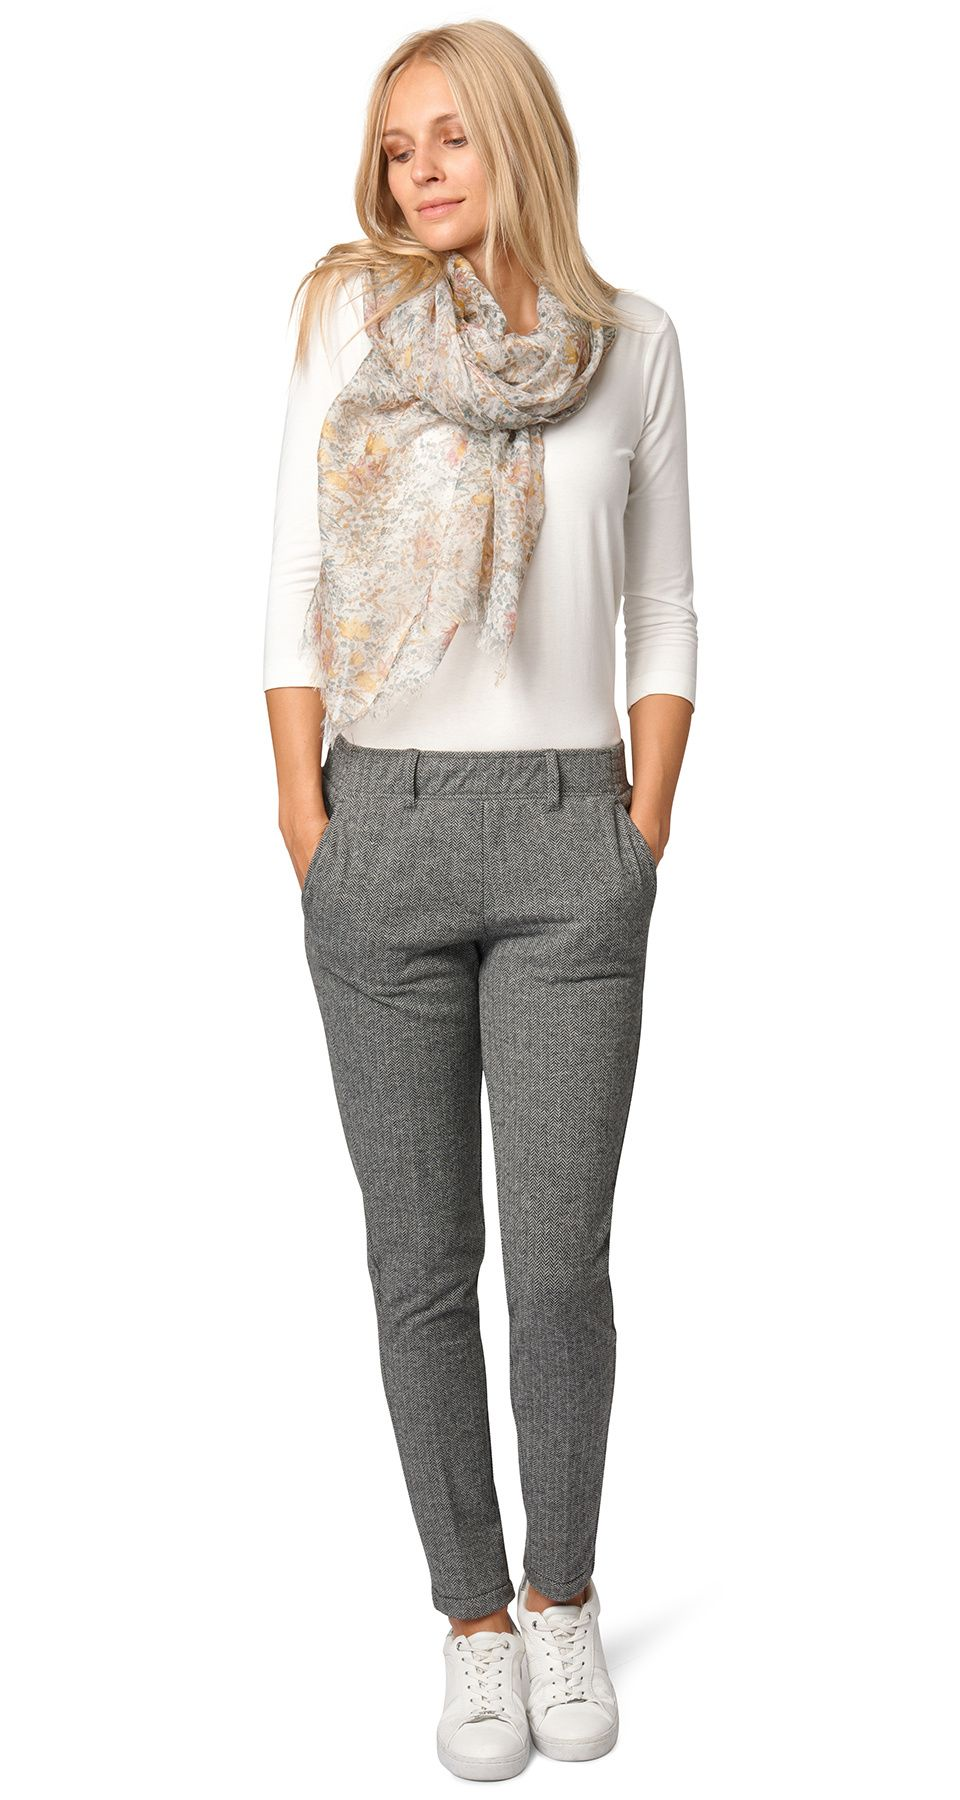 Comfortable Pants With Delicate Pattern For Women Patterned With Elasticated Waistband Tom Tailor Fashion Fashion Online Shop Tom Tailor